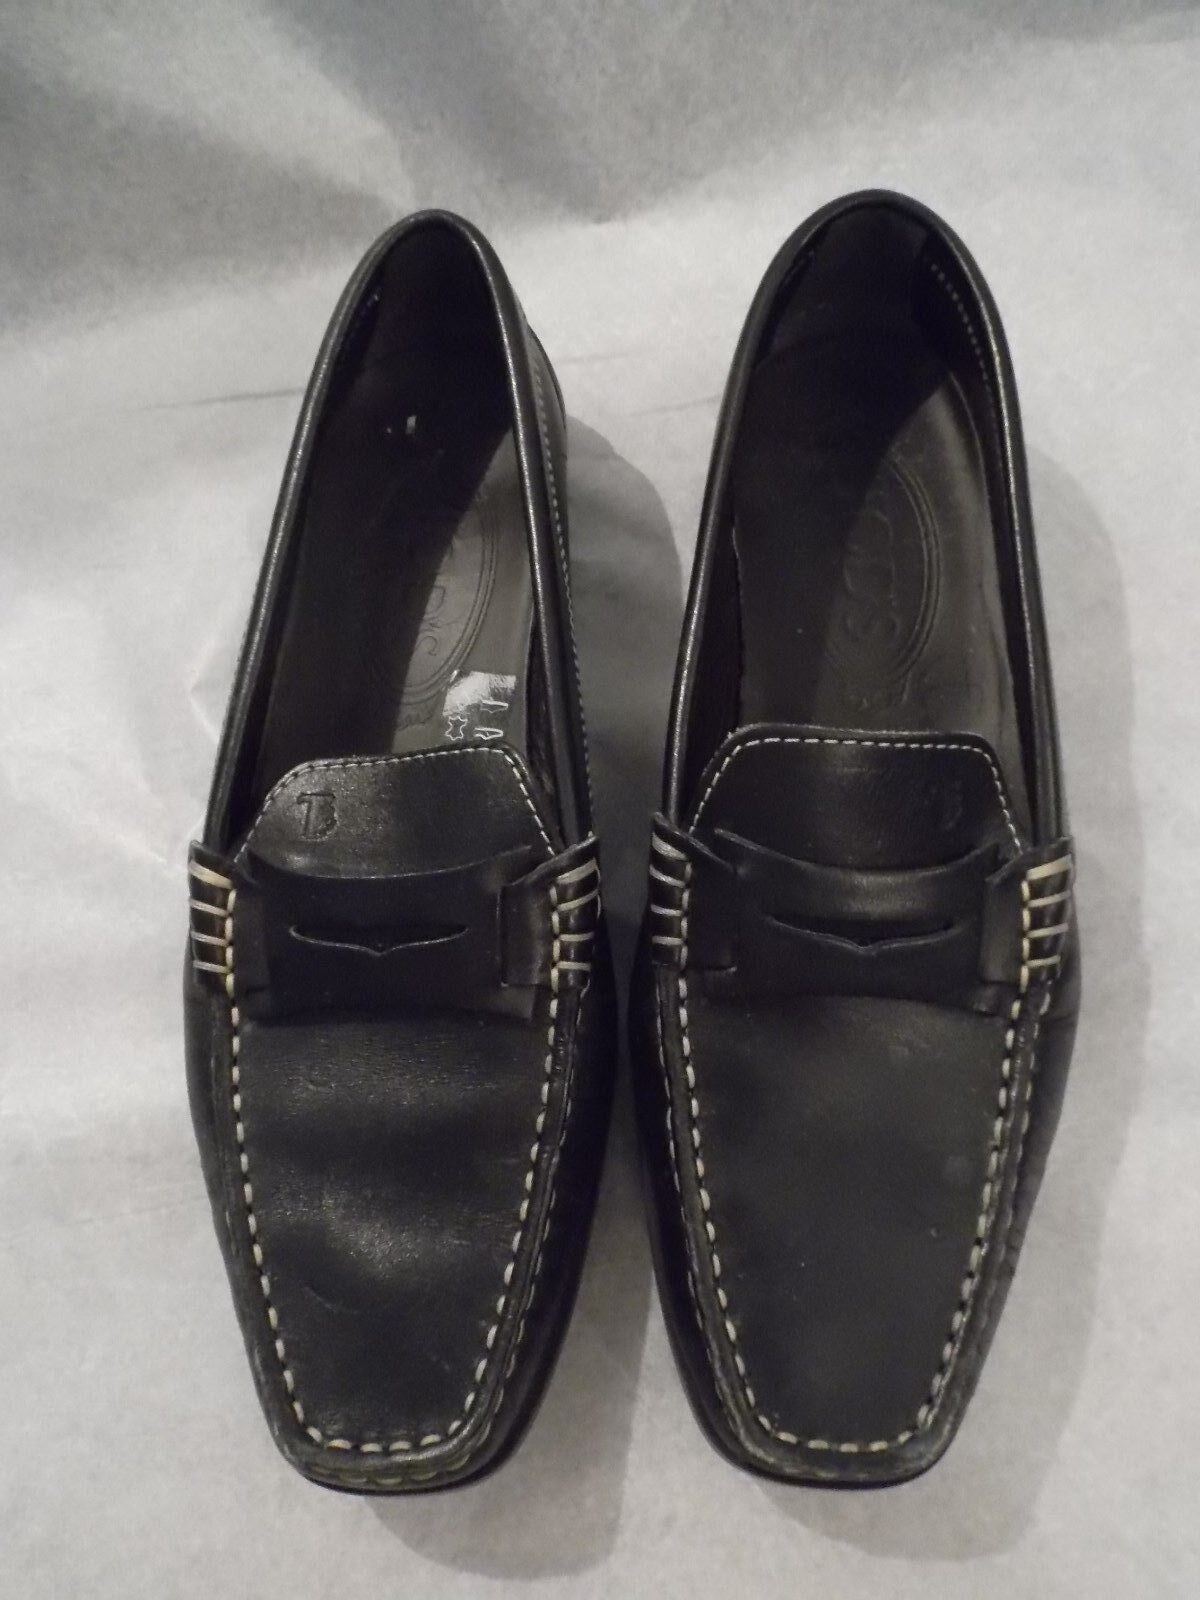 Authentic TOD's schwarz Leder driving shoe, loafer, bump sole, 5, 5.5 runs large